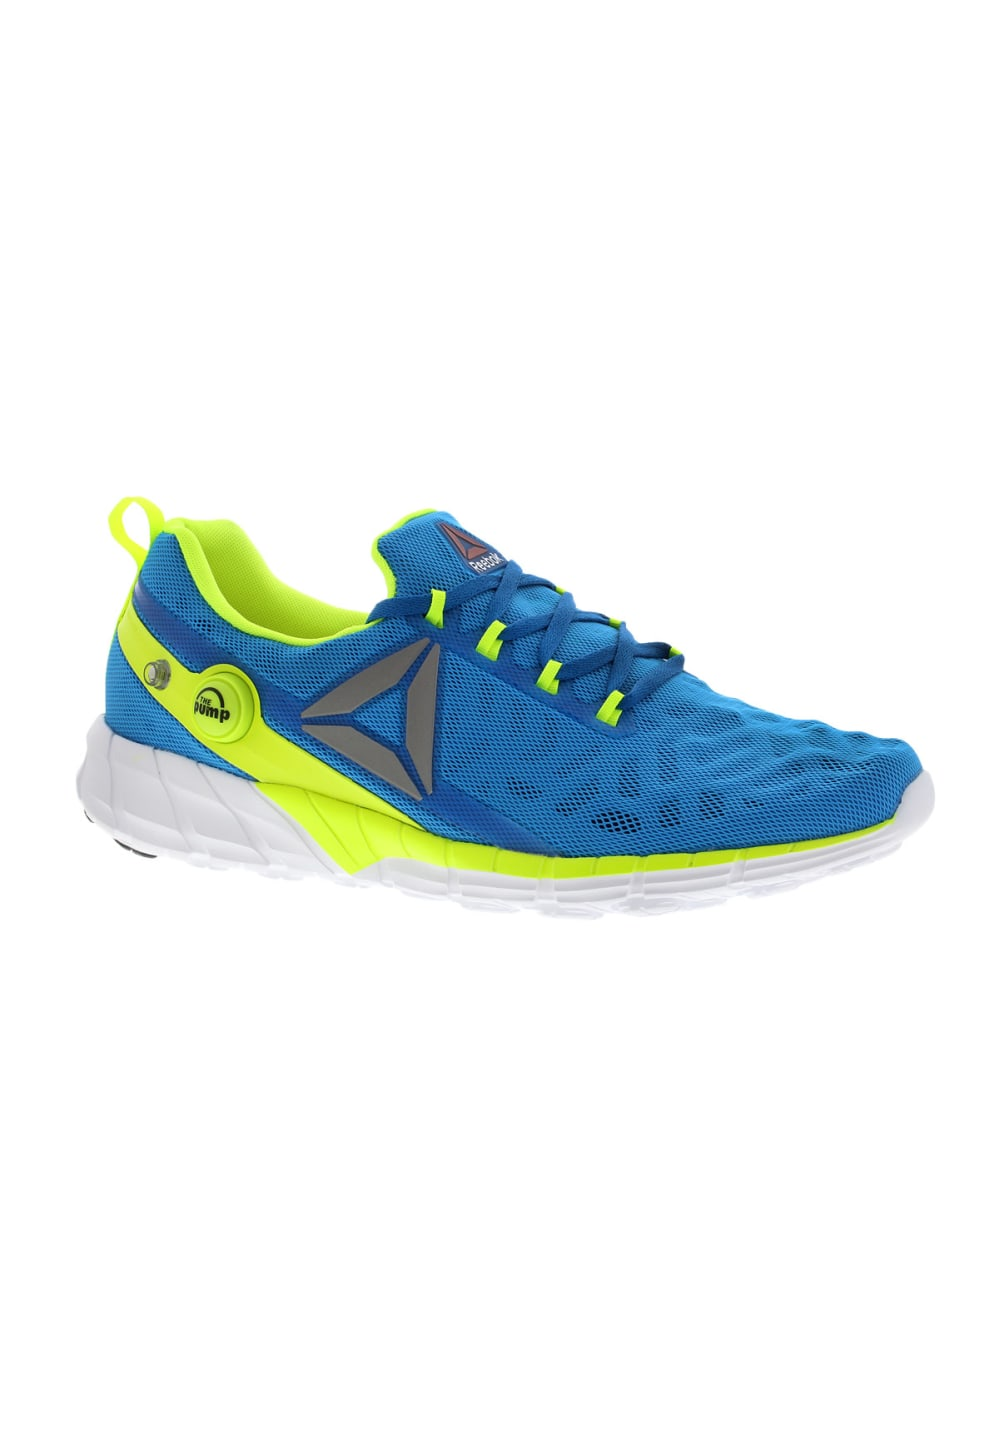 Reebok ZPump Fusion 2.5 Running shoes for Men Blue